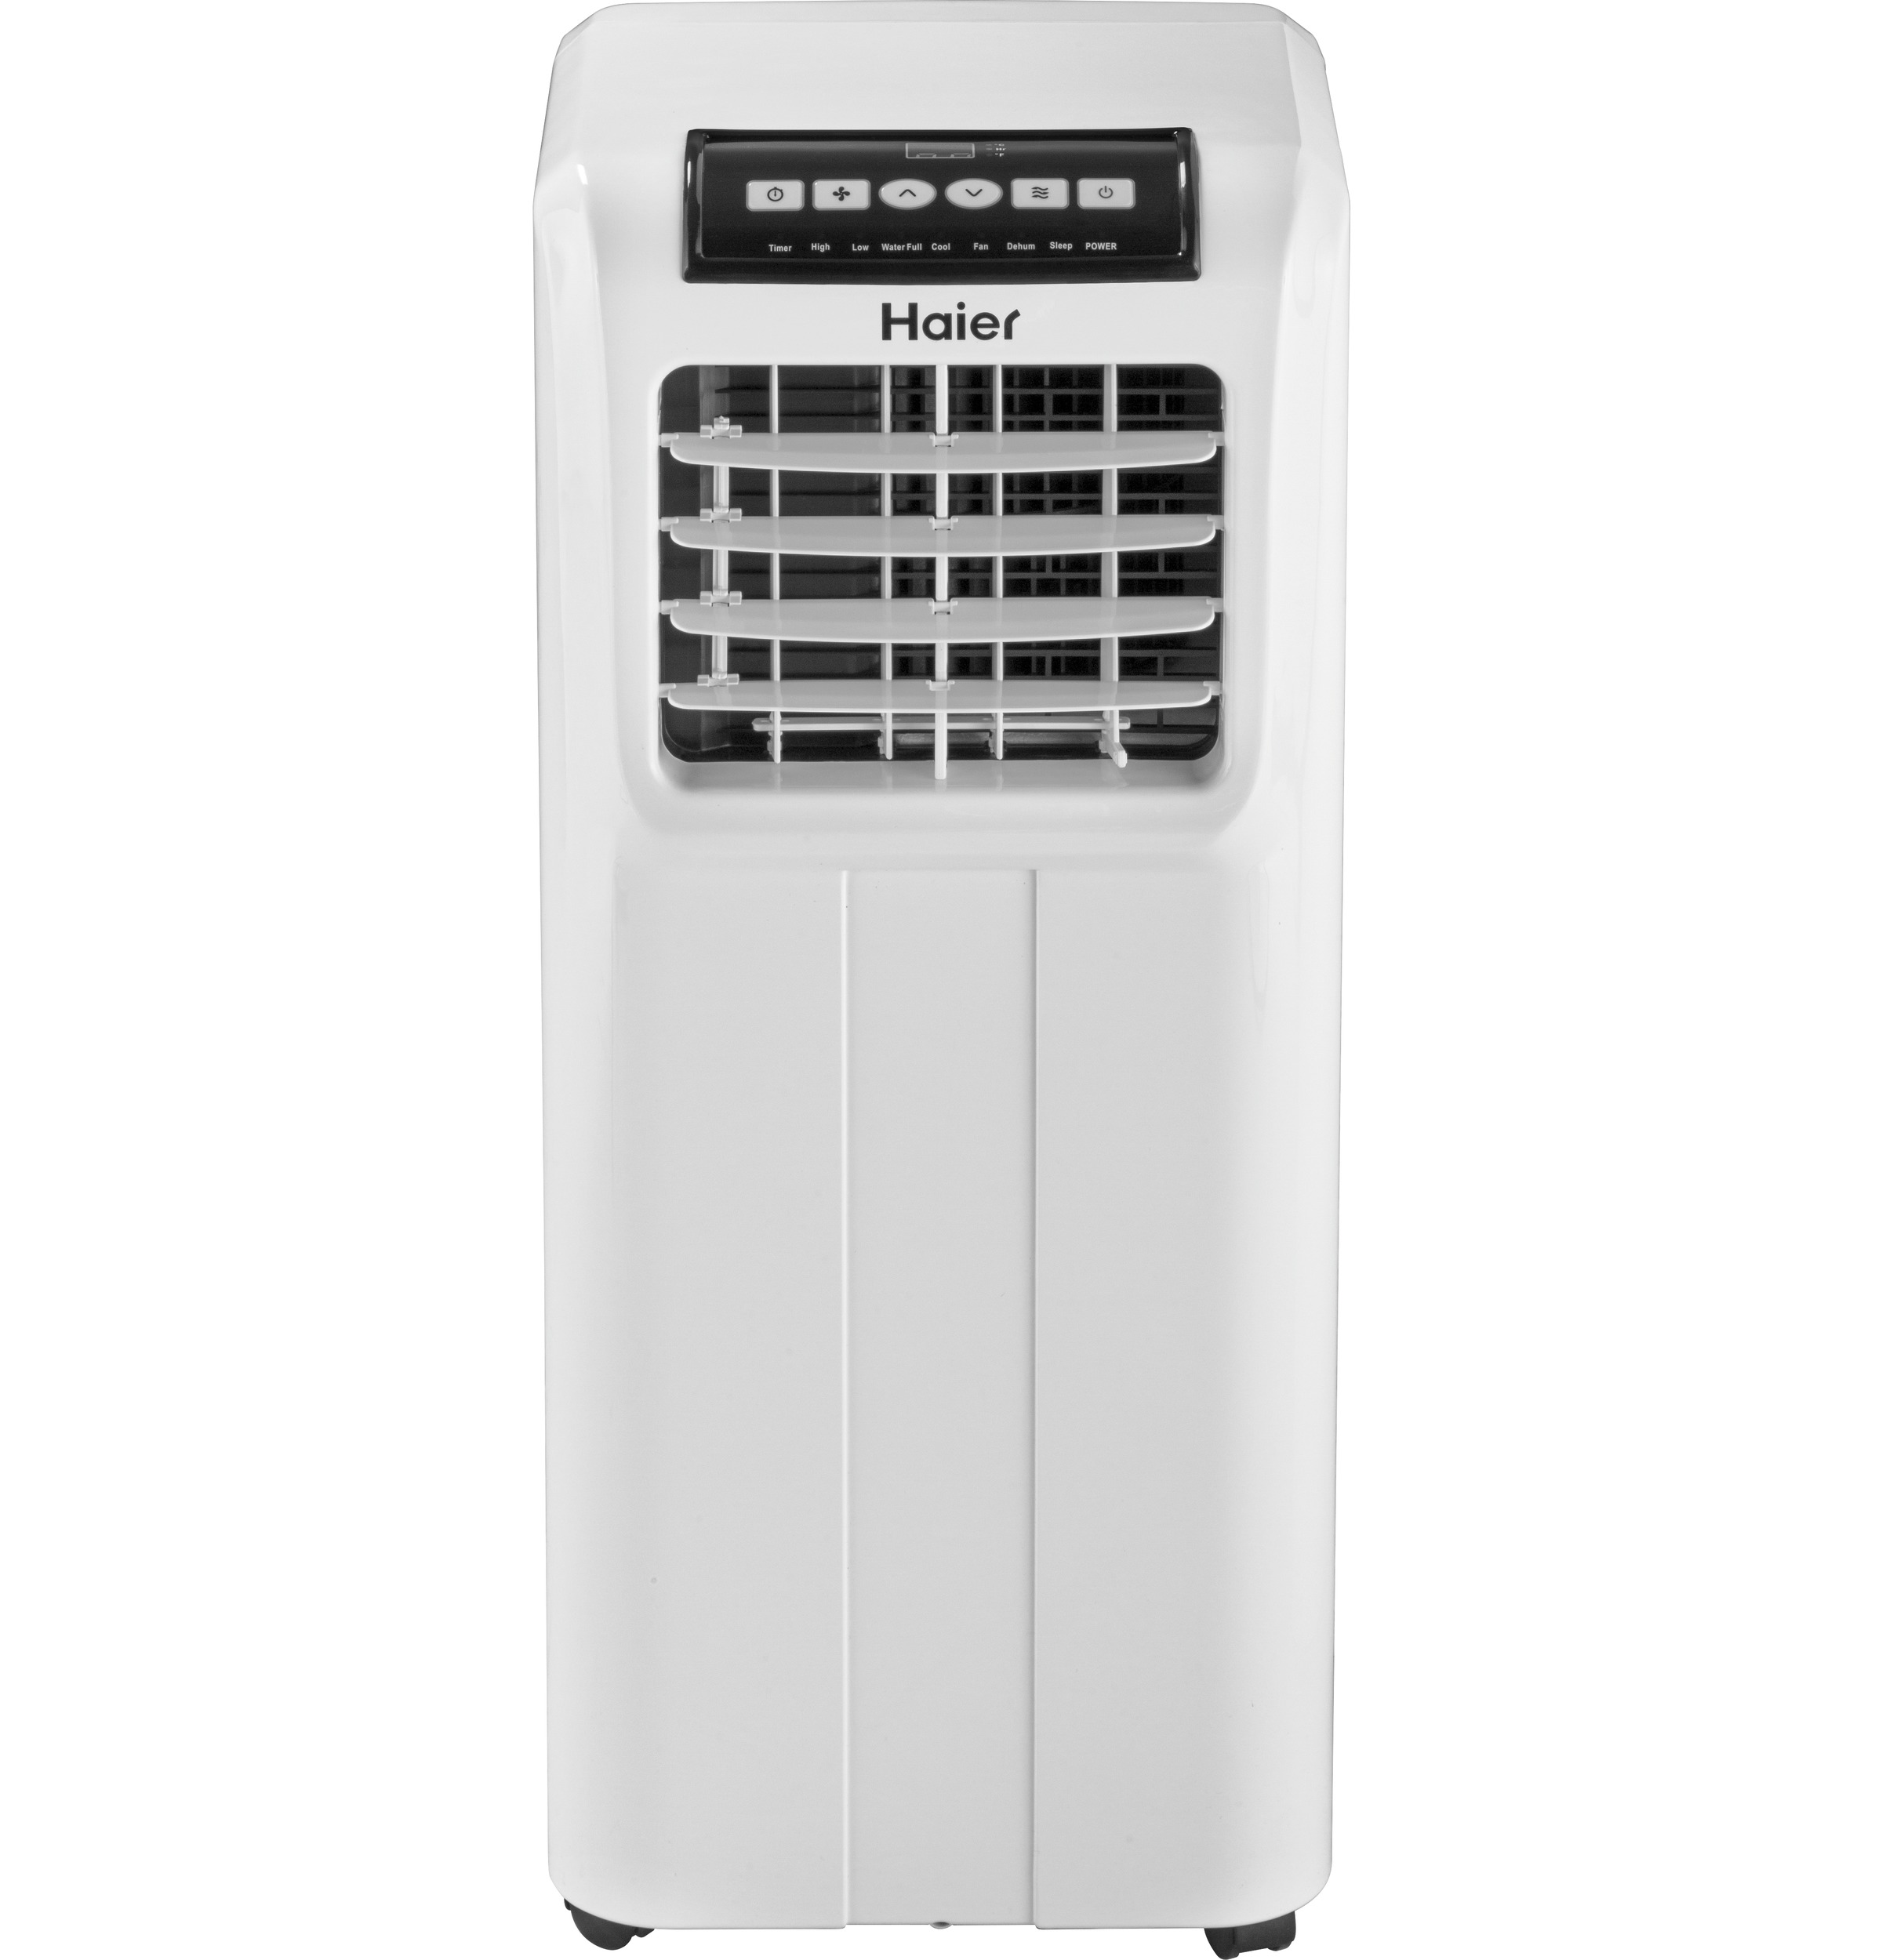 Haier Portable Air Conditioner